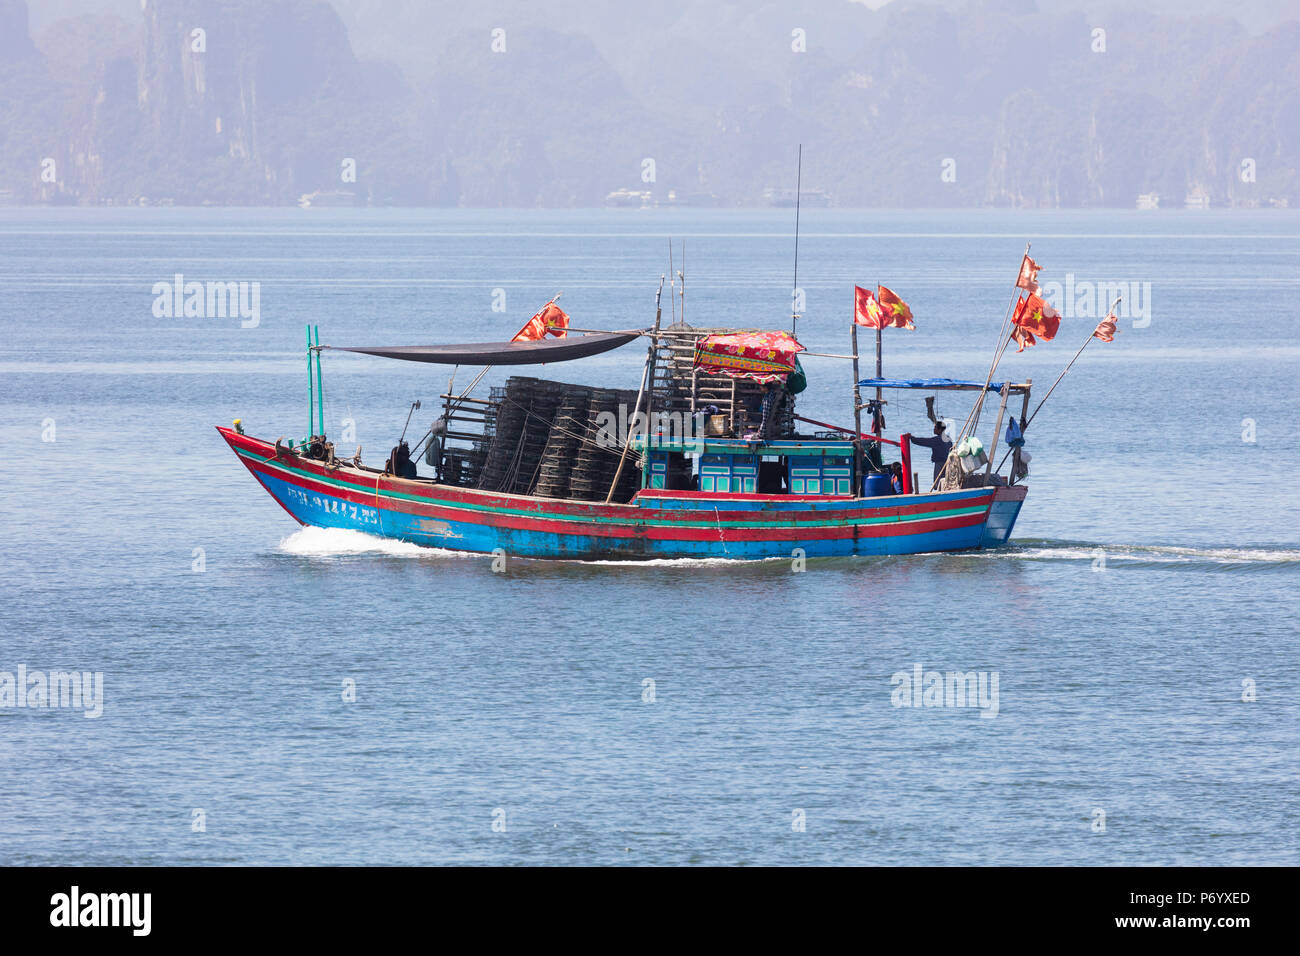 Colourful fishing boat with flags, Halong Bay, Quang Ninh Province, North-East Vietnam, South-East Asia Stock Photo